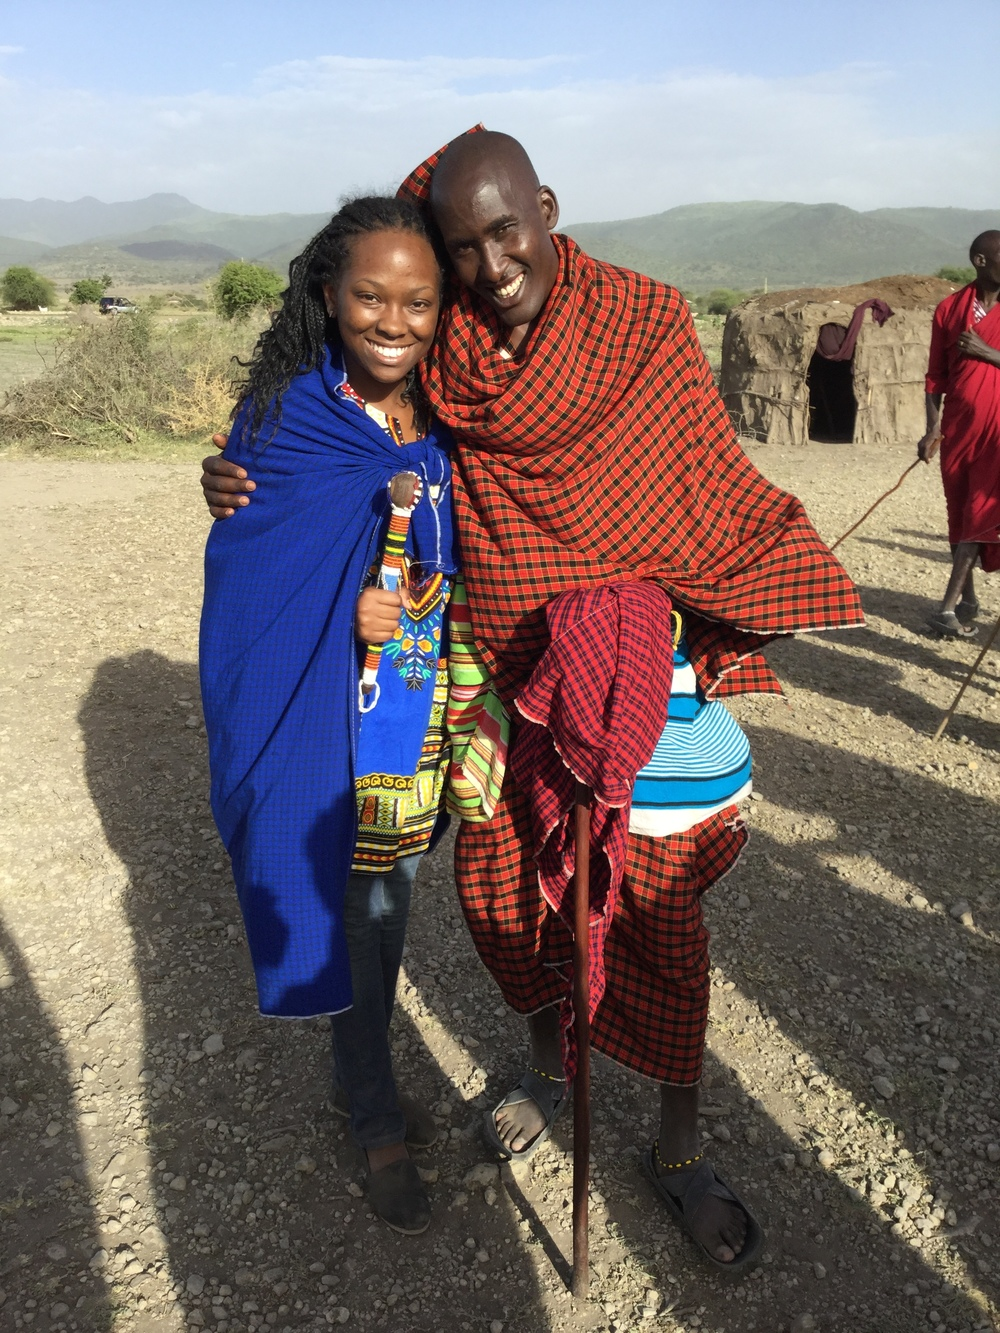 U.S. student Sha'von being welcomed during our visit to a local Maasai village.